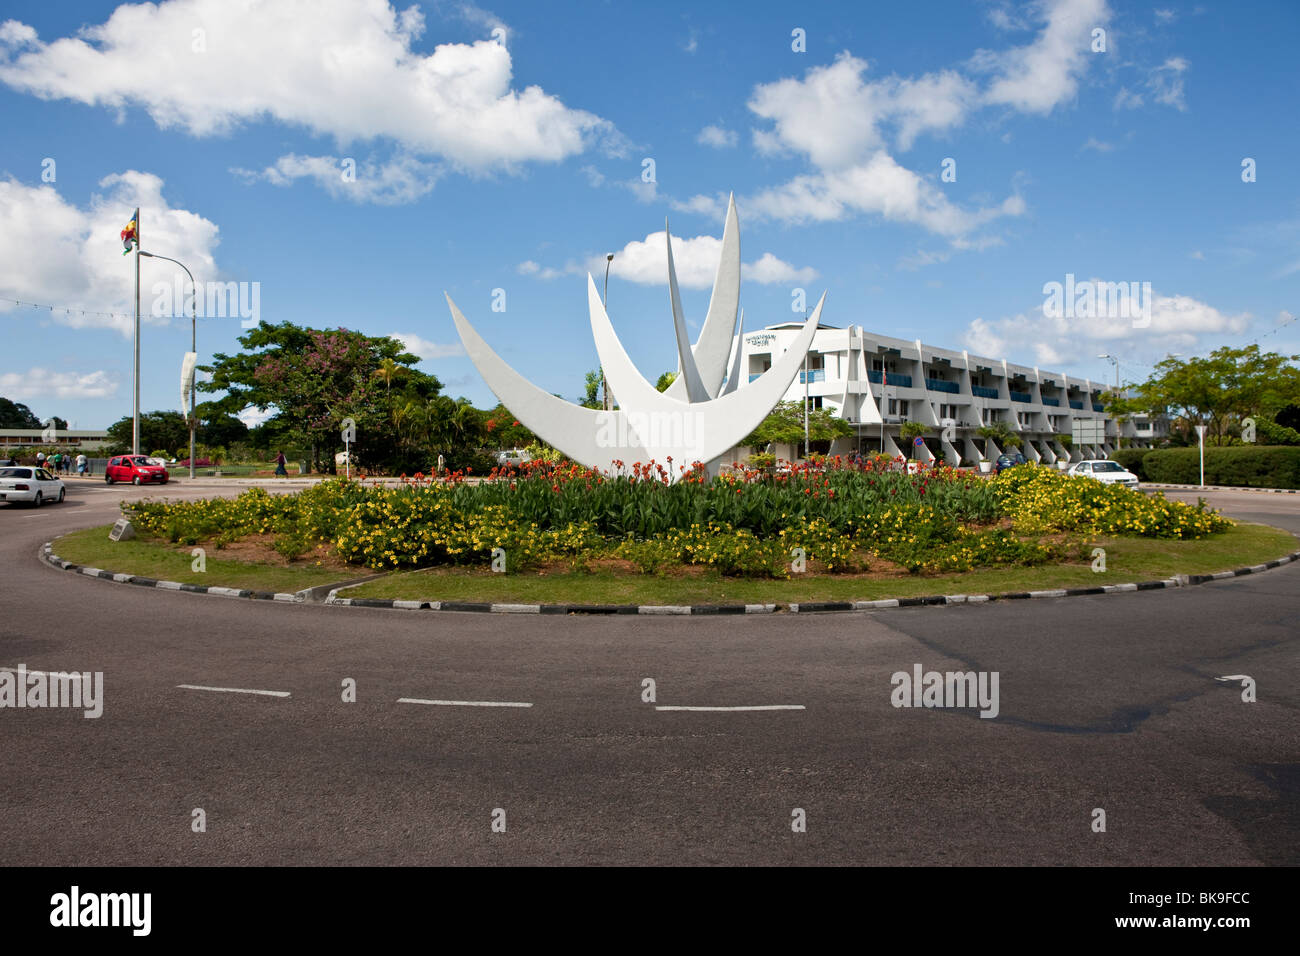 Bicentennial monument in a roundabout in front of Oceangate House, the capital city of Victoria, Mahe Island, Seychelles, - Stock Image